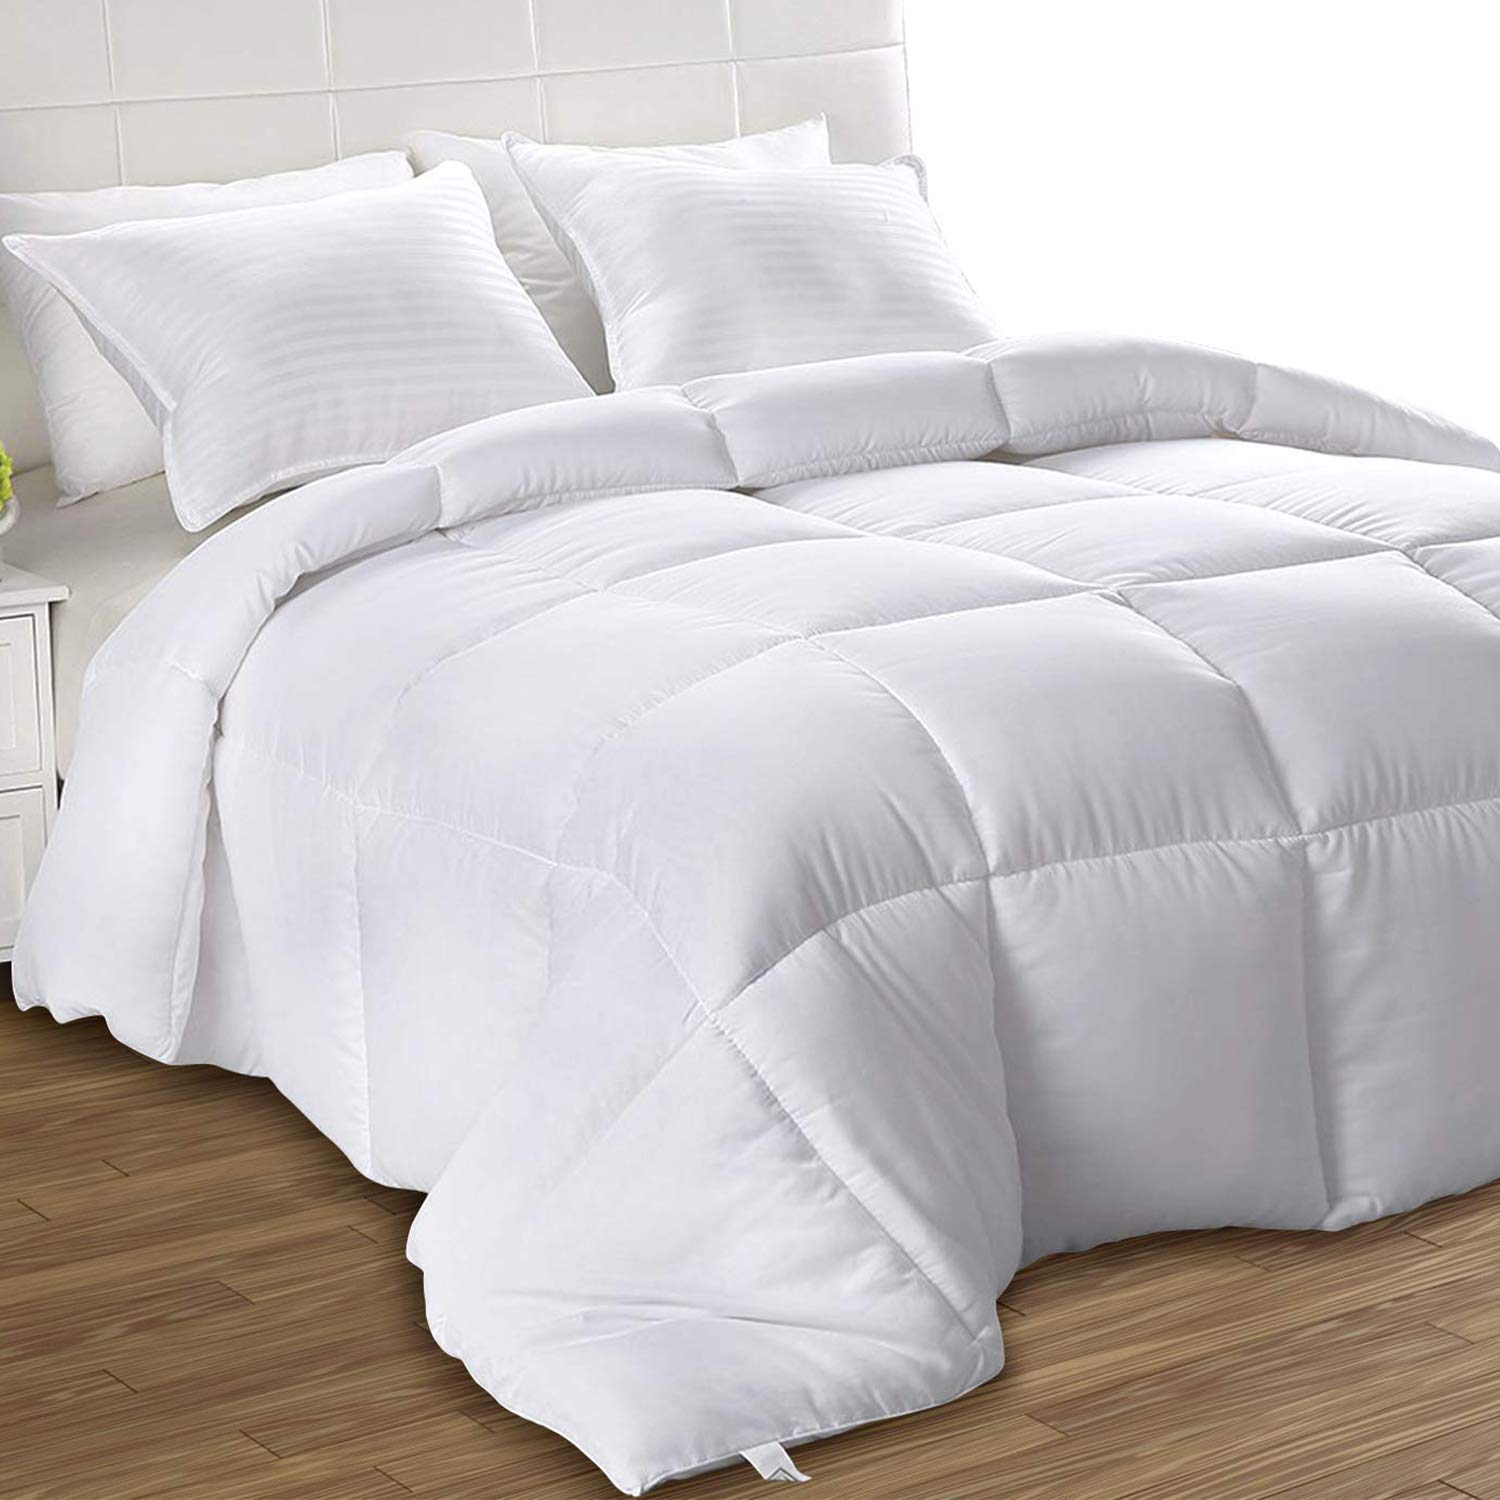 Utopia Bedding Alternative Comforter White